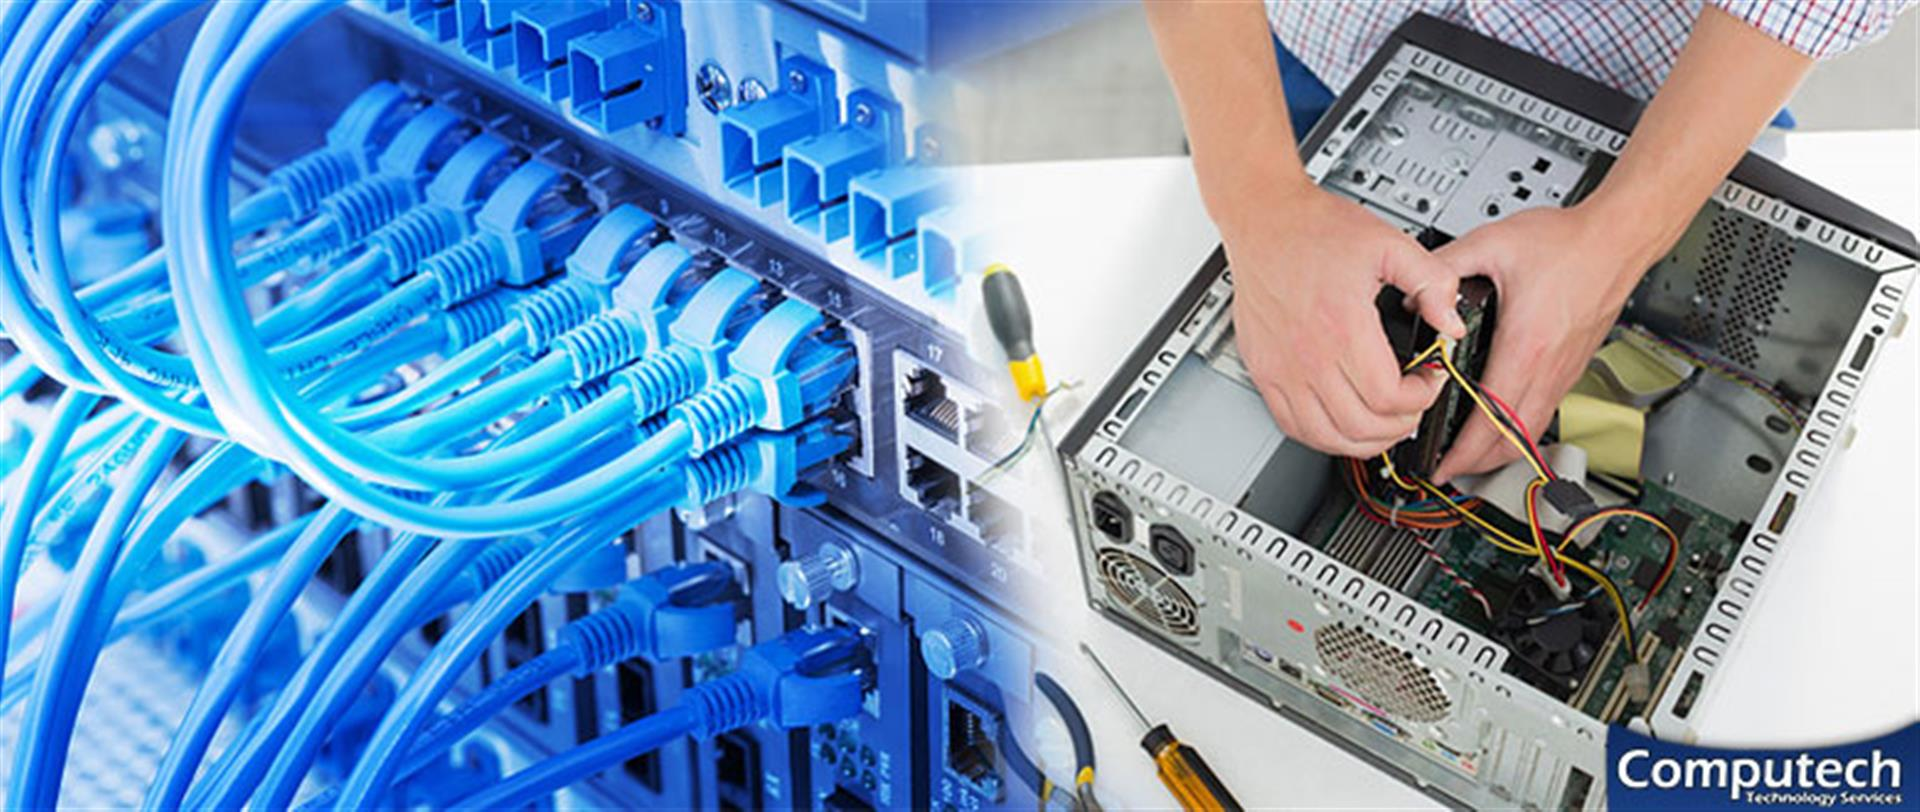 Smiths Station Alabama On-Site PC & Printer Repair, Network, Telecom & Data Cabling Services